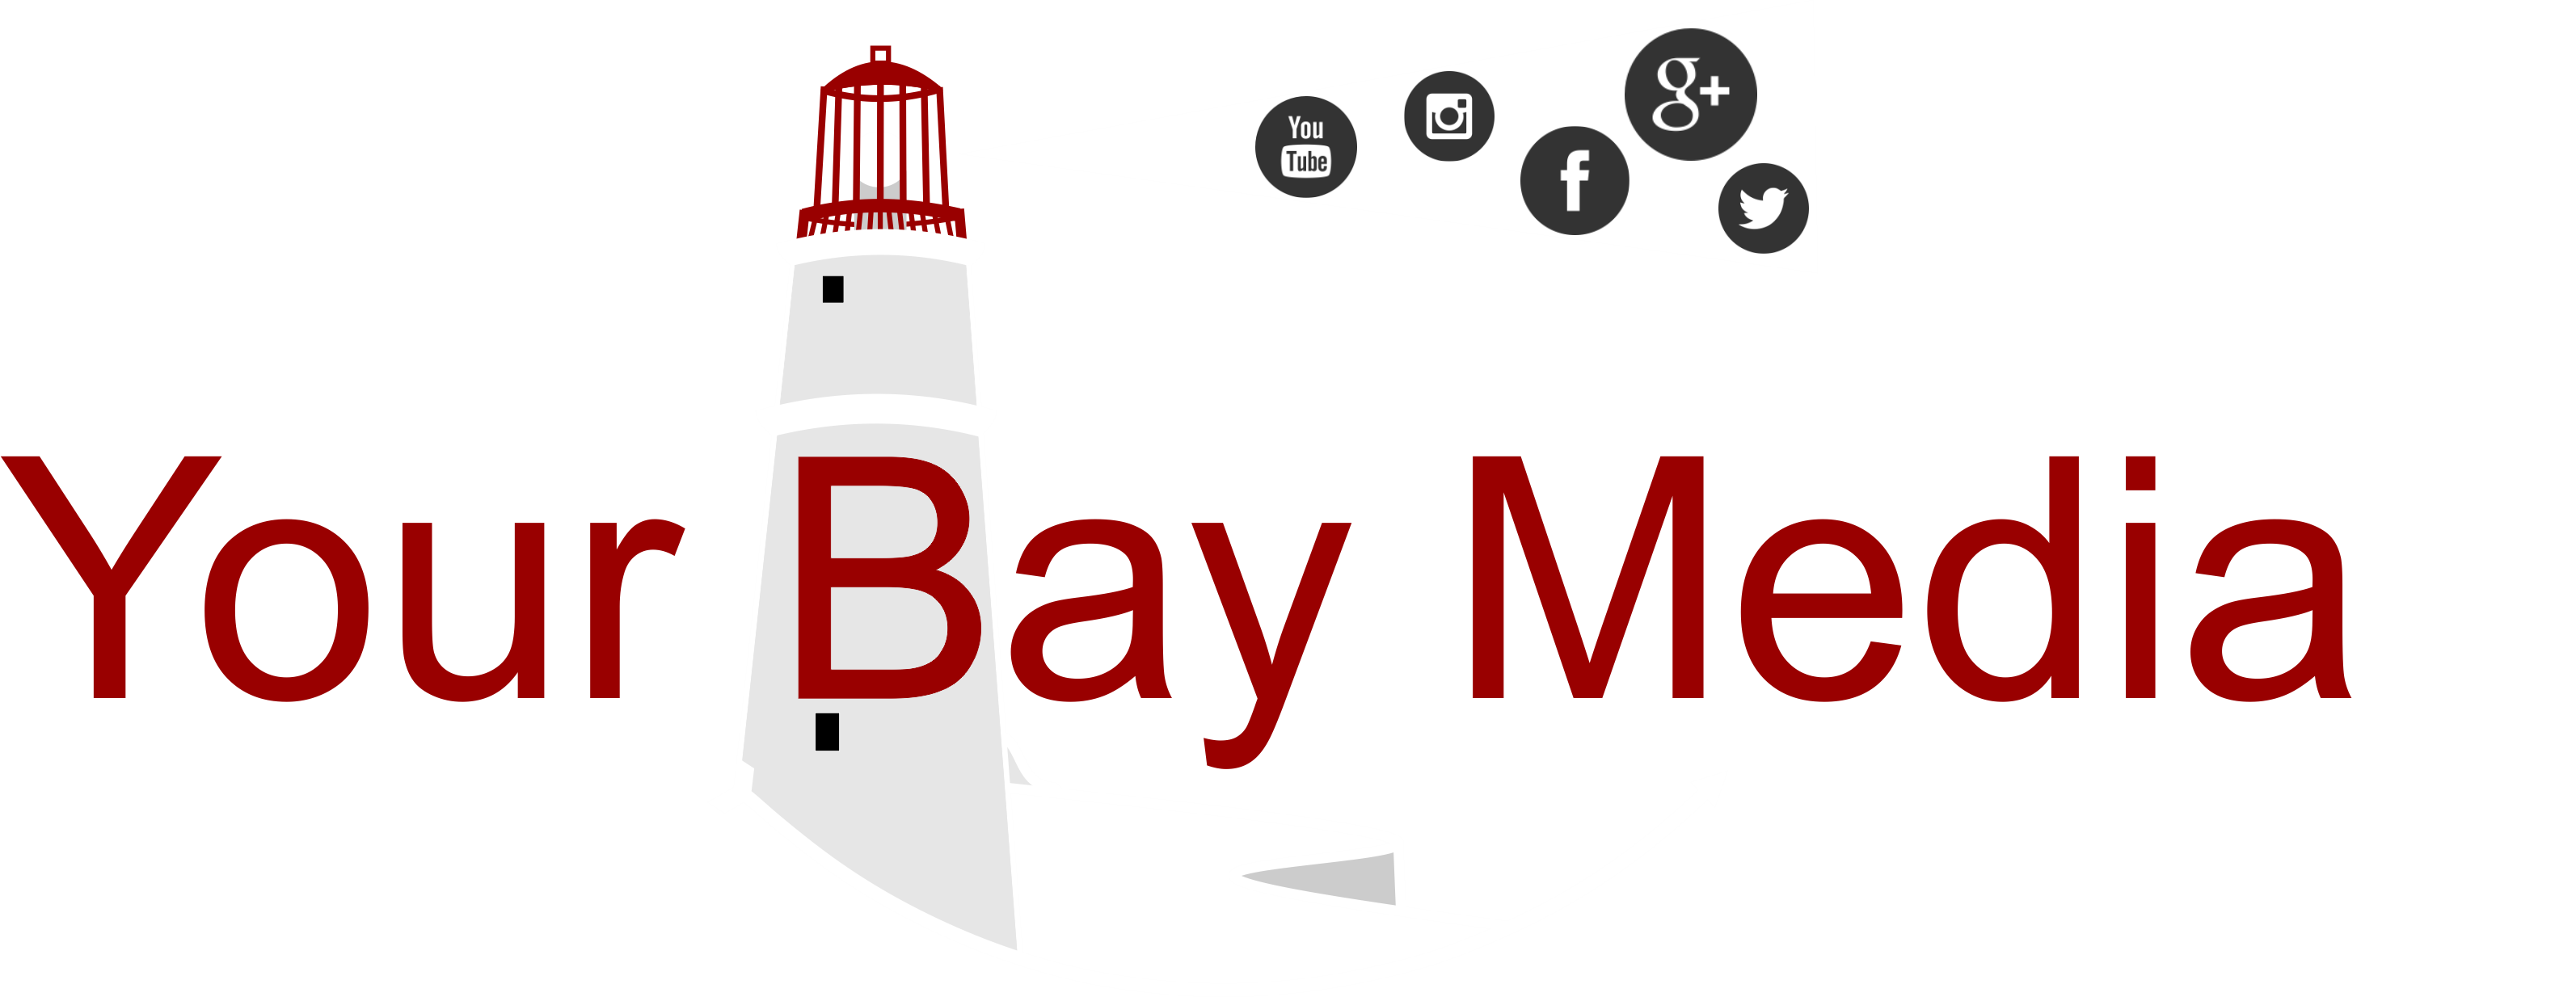 Your Bay Media